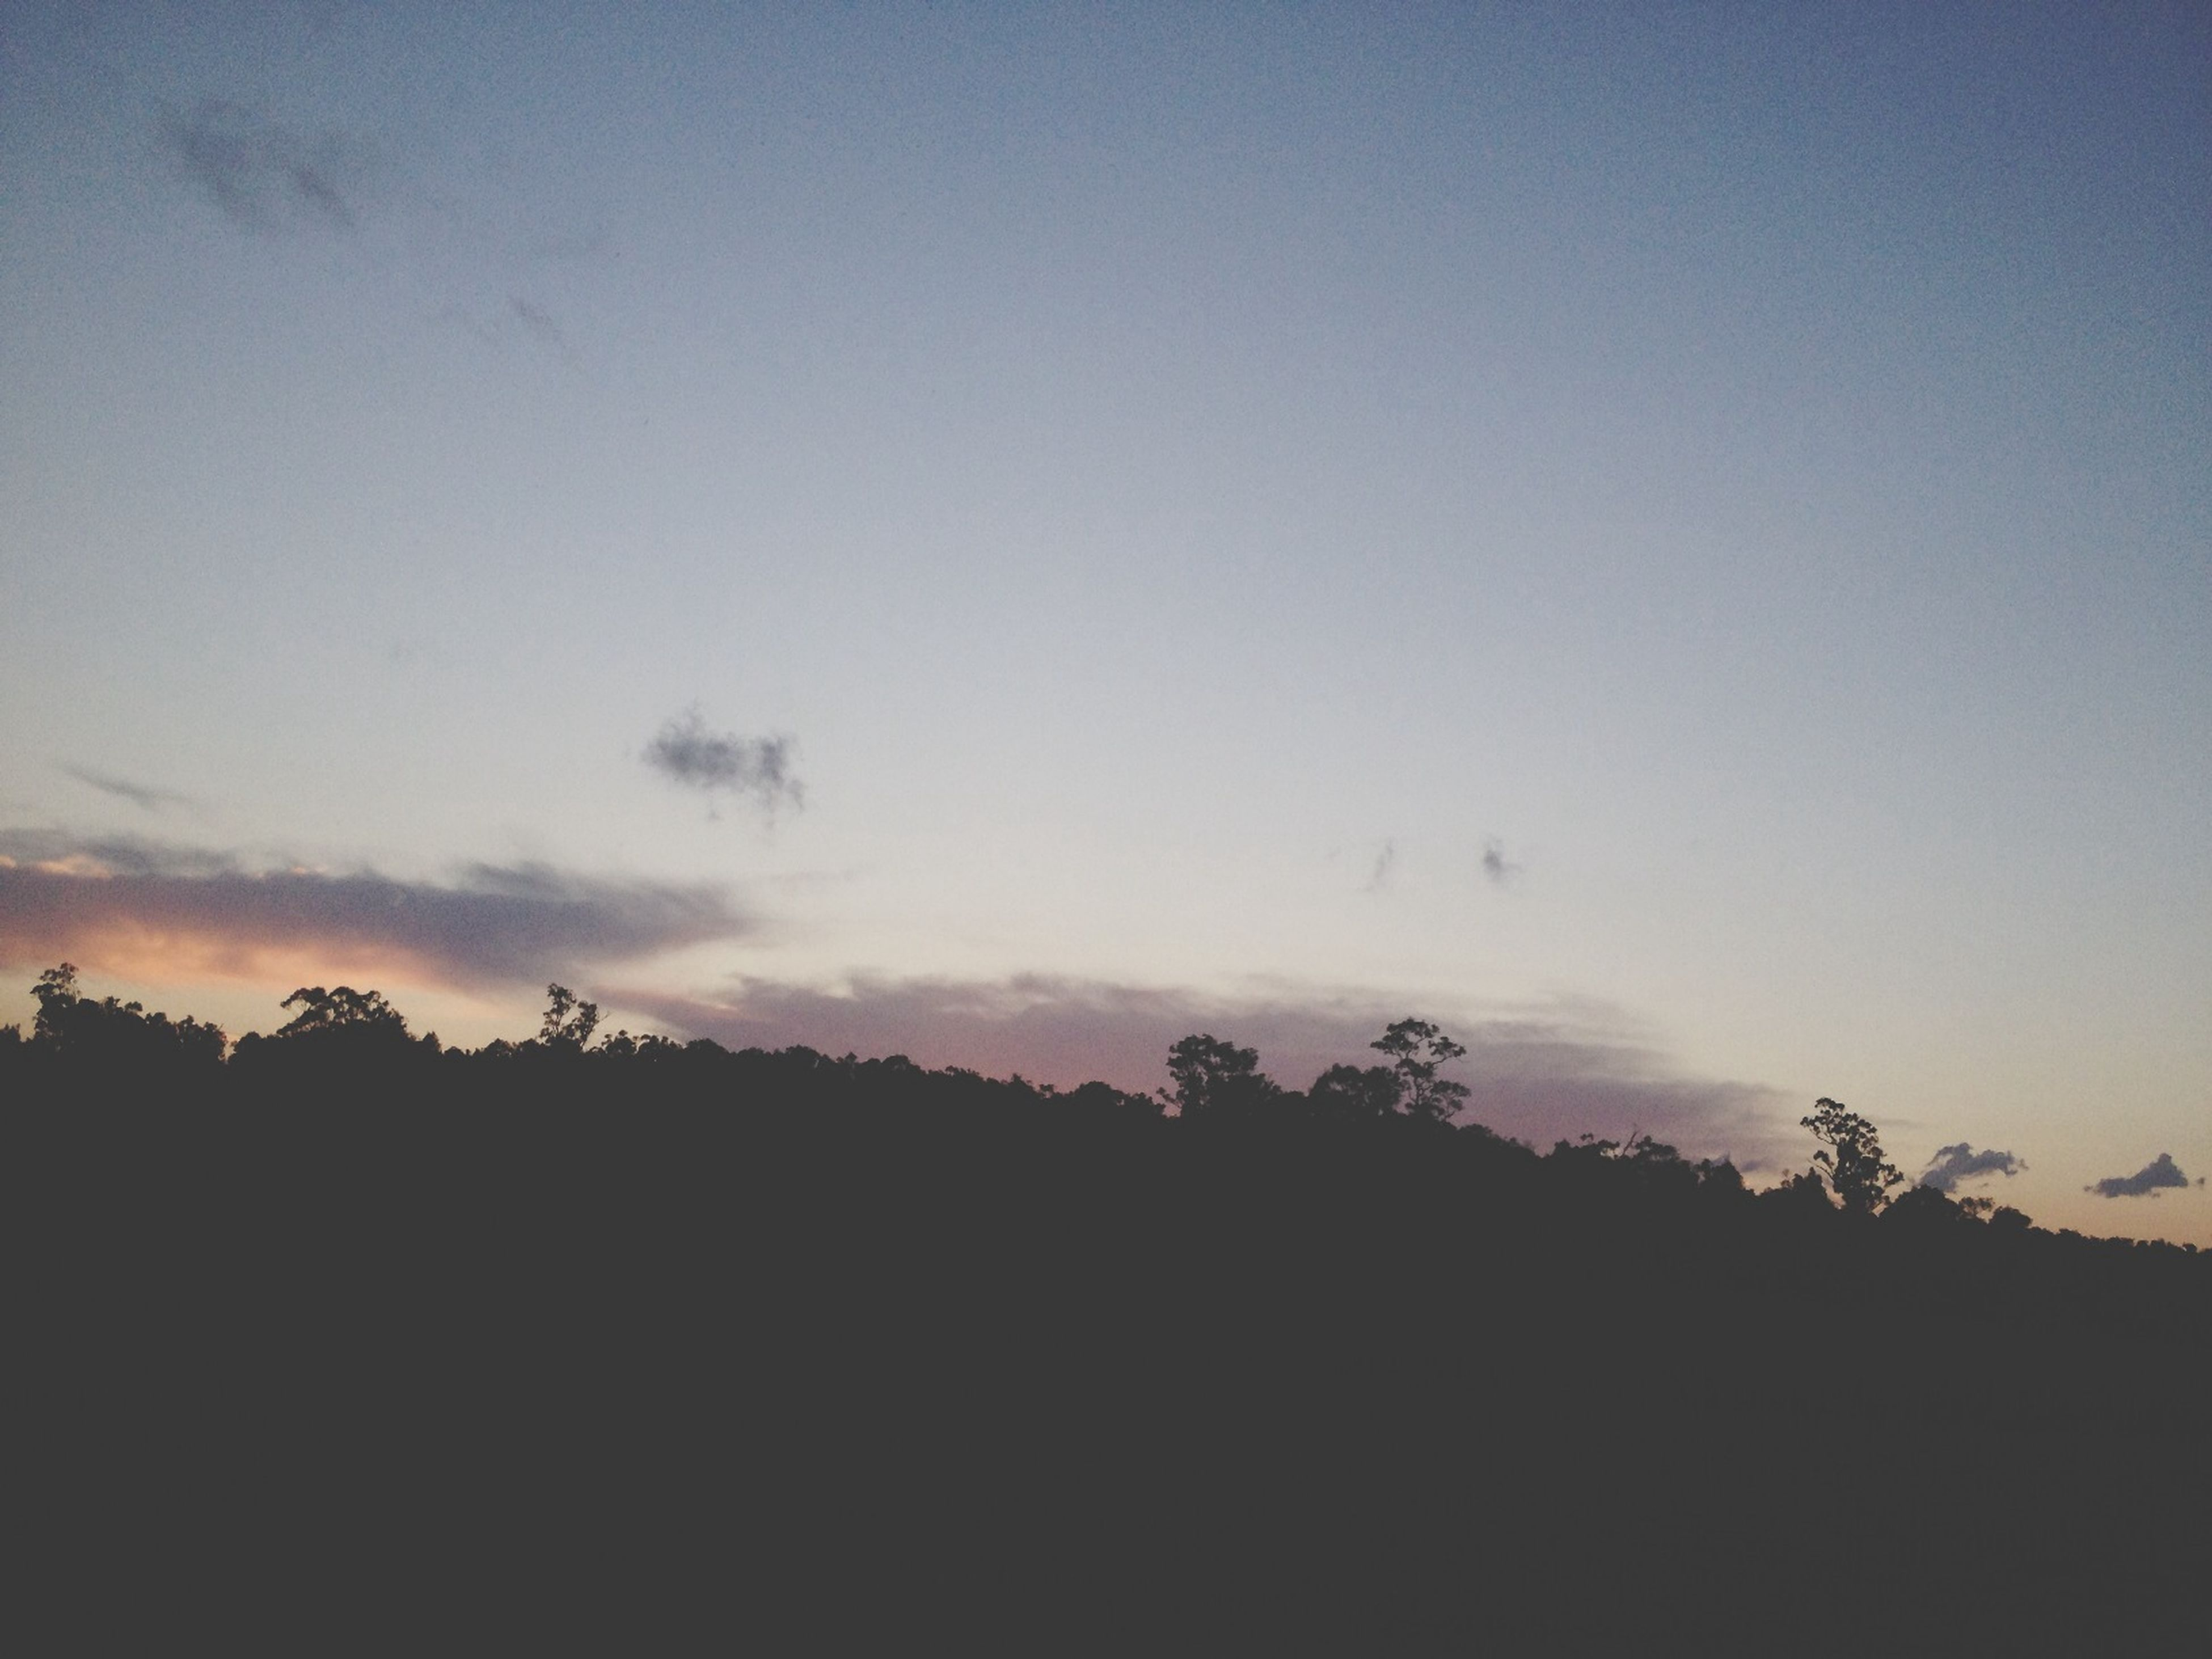 silhouette, tranquil scene, tranquility, scenics, sky, beauty in nature, tree, sunset, nature, copy space, landscape, idyllic, dusk, non-urban scene, outdoors, no people, cloud - sky, non urban scene, low angle view, remote